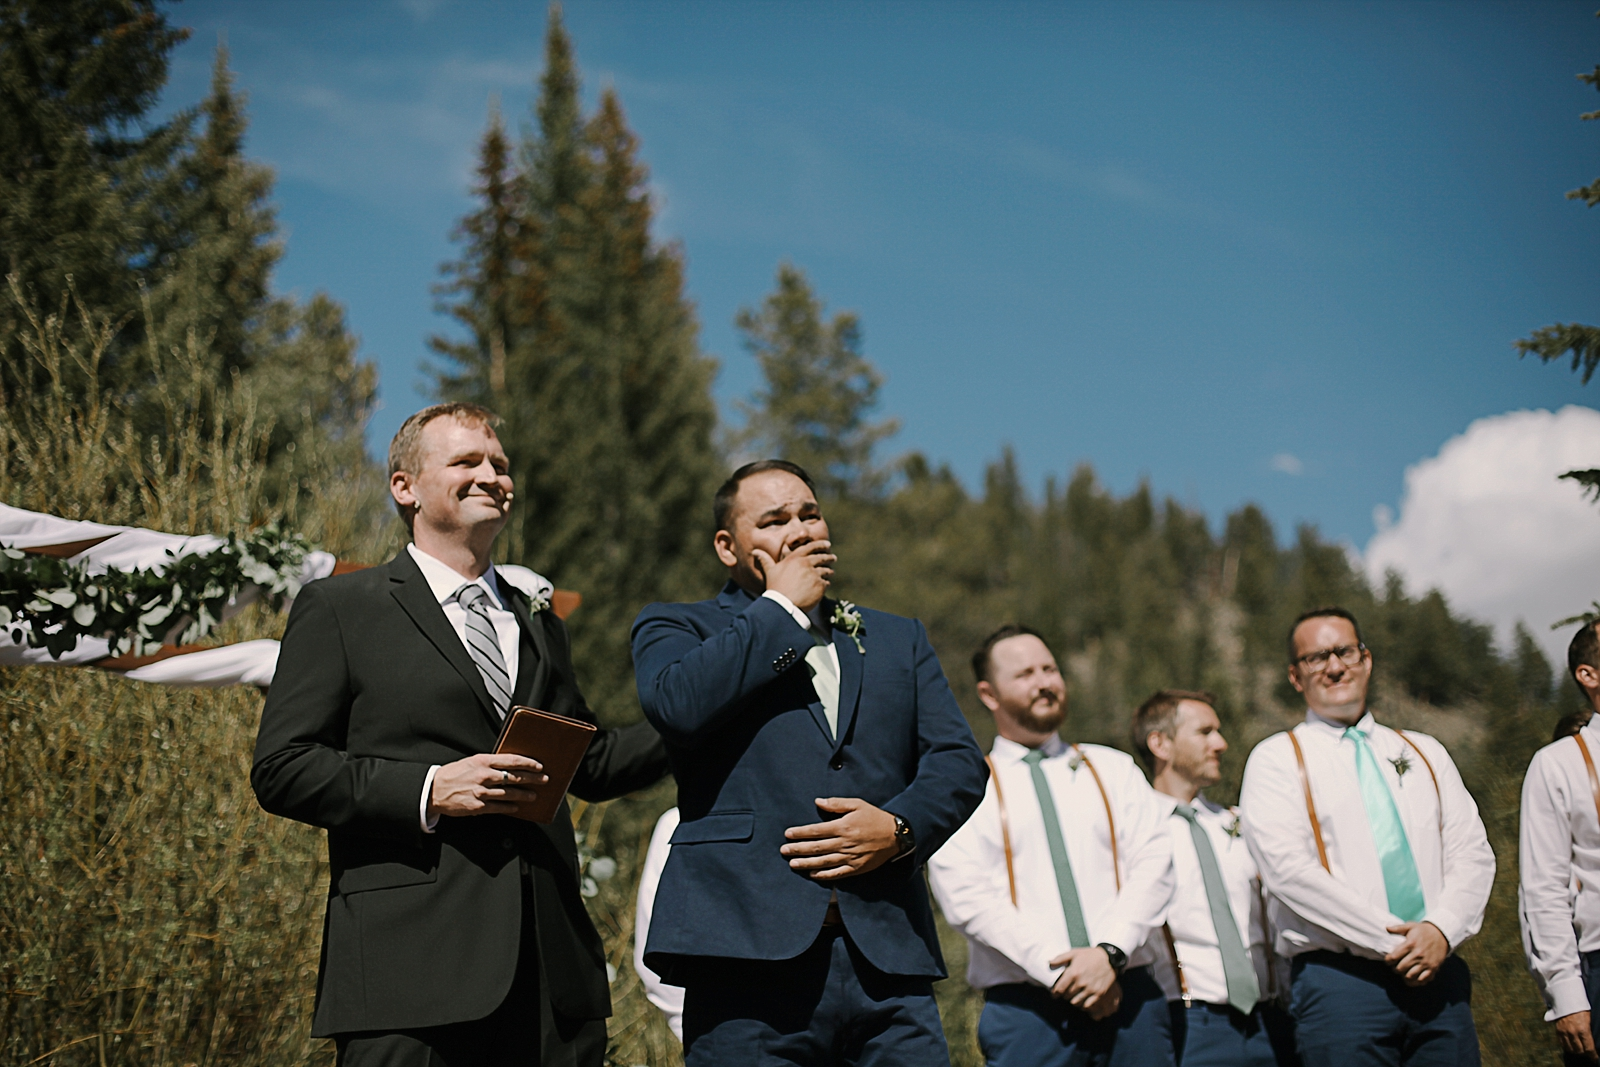 groom crying, groom cries seeing his bride, breckenridge colorado wedding, breckenridge colorado wedding photographer, the church at agape outpost wedding, agape outpost wedding photographer